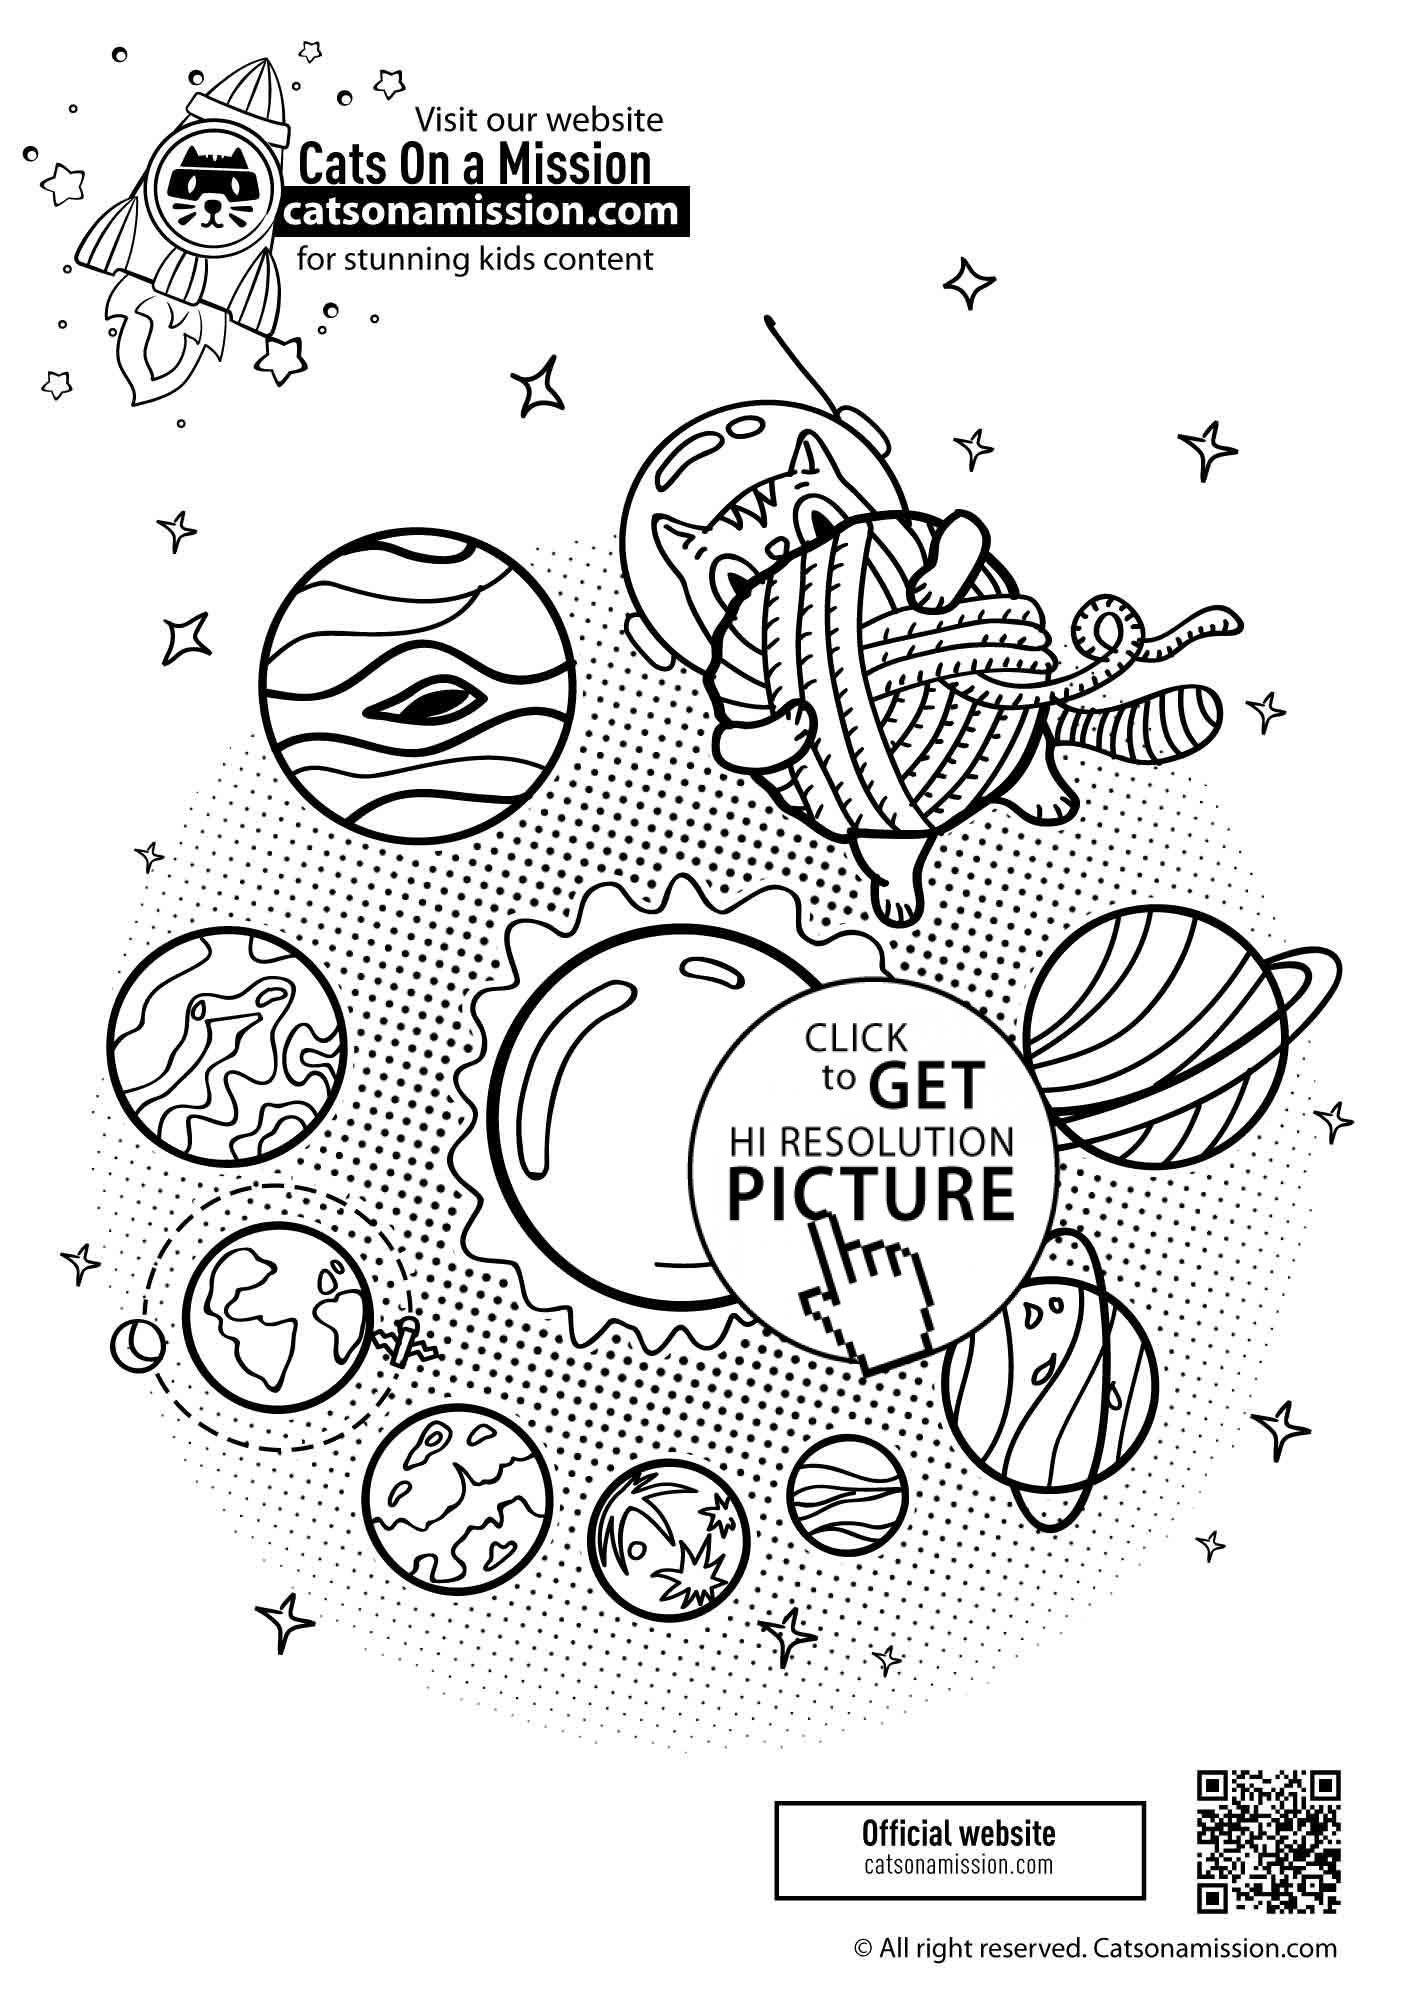 Cat In Space With Planets Coloring Pages For Kids Printable Free Cats On A Mission Planet Coloring Pages Space Coloring Pages Coloring Pages [ 2000 x 1413 Pixel ]